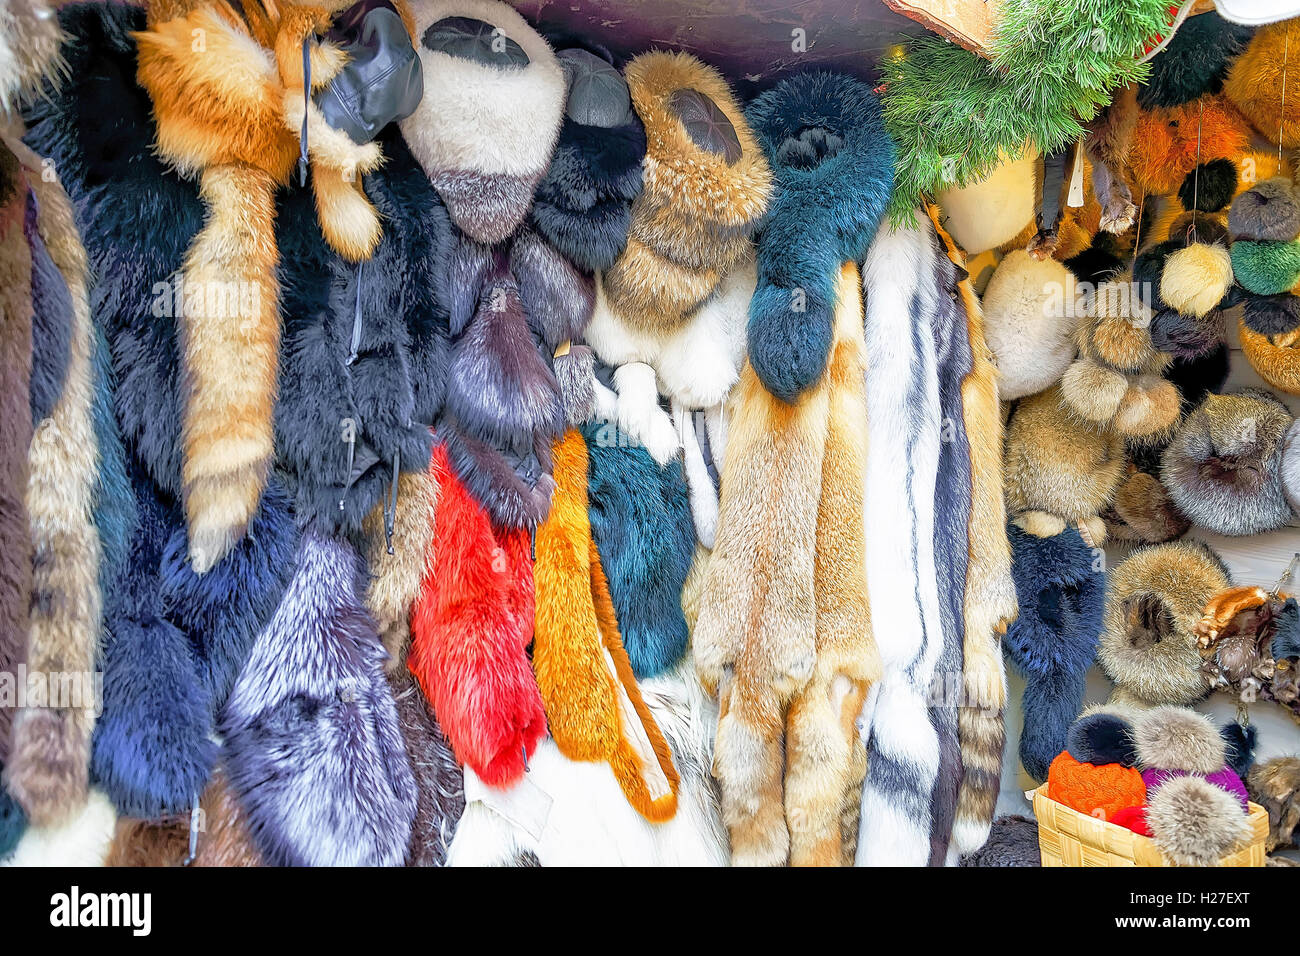 Riga, Latvia - December 25, 2015: Clothes made from animal skin and fur on the display at stall during the Riga - Stock Image